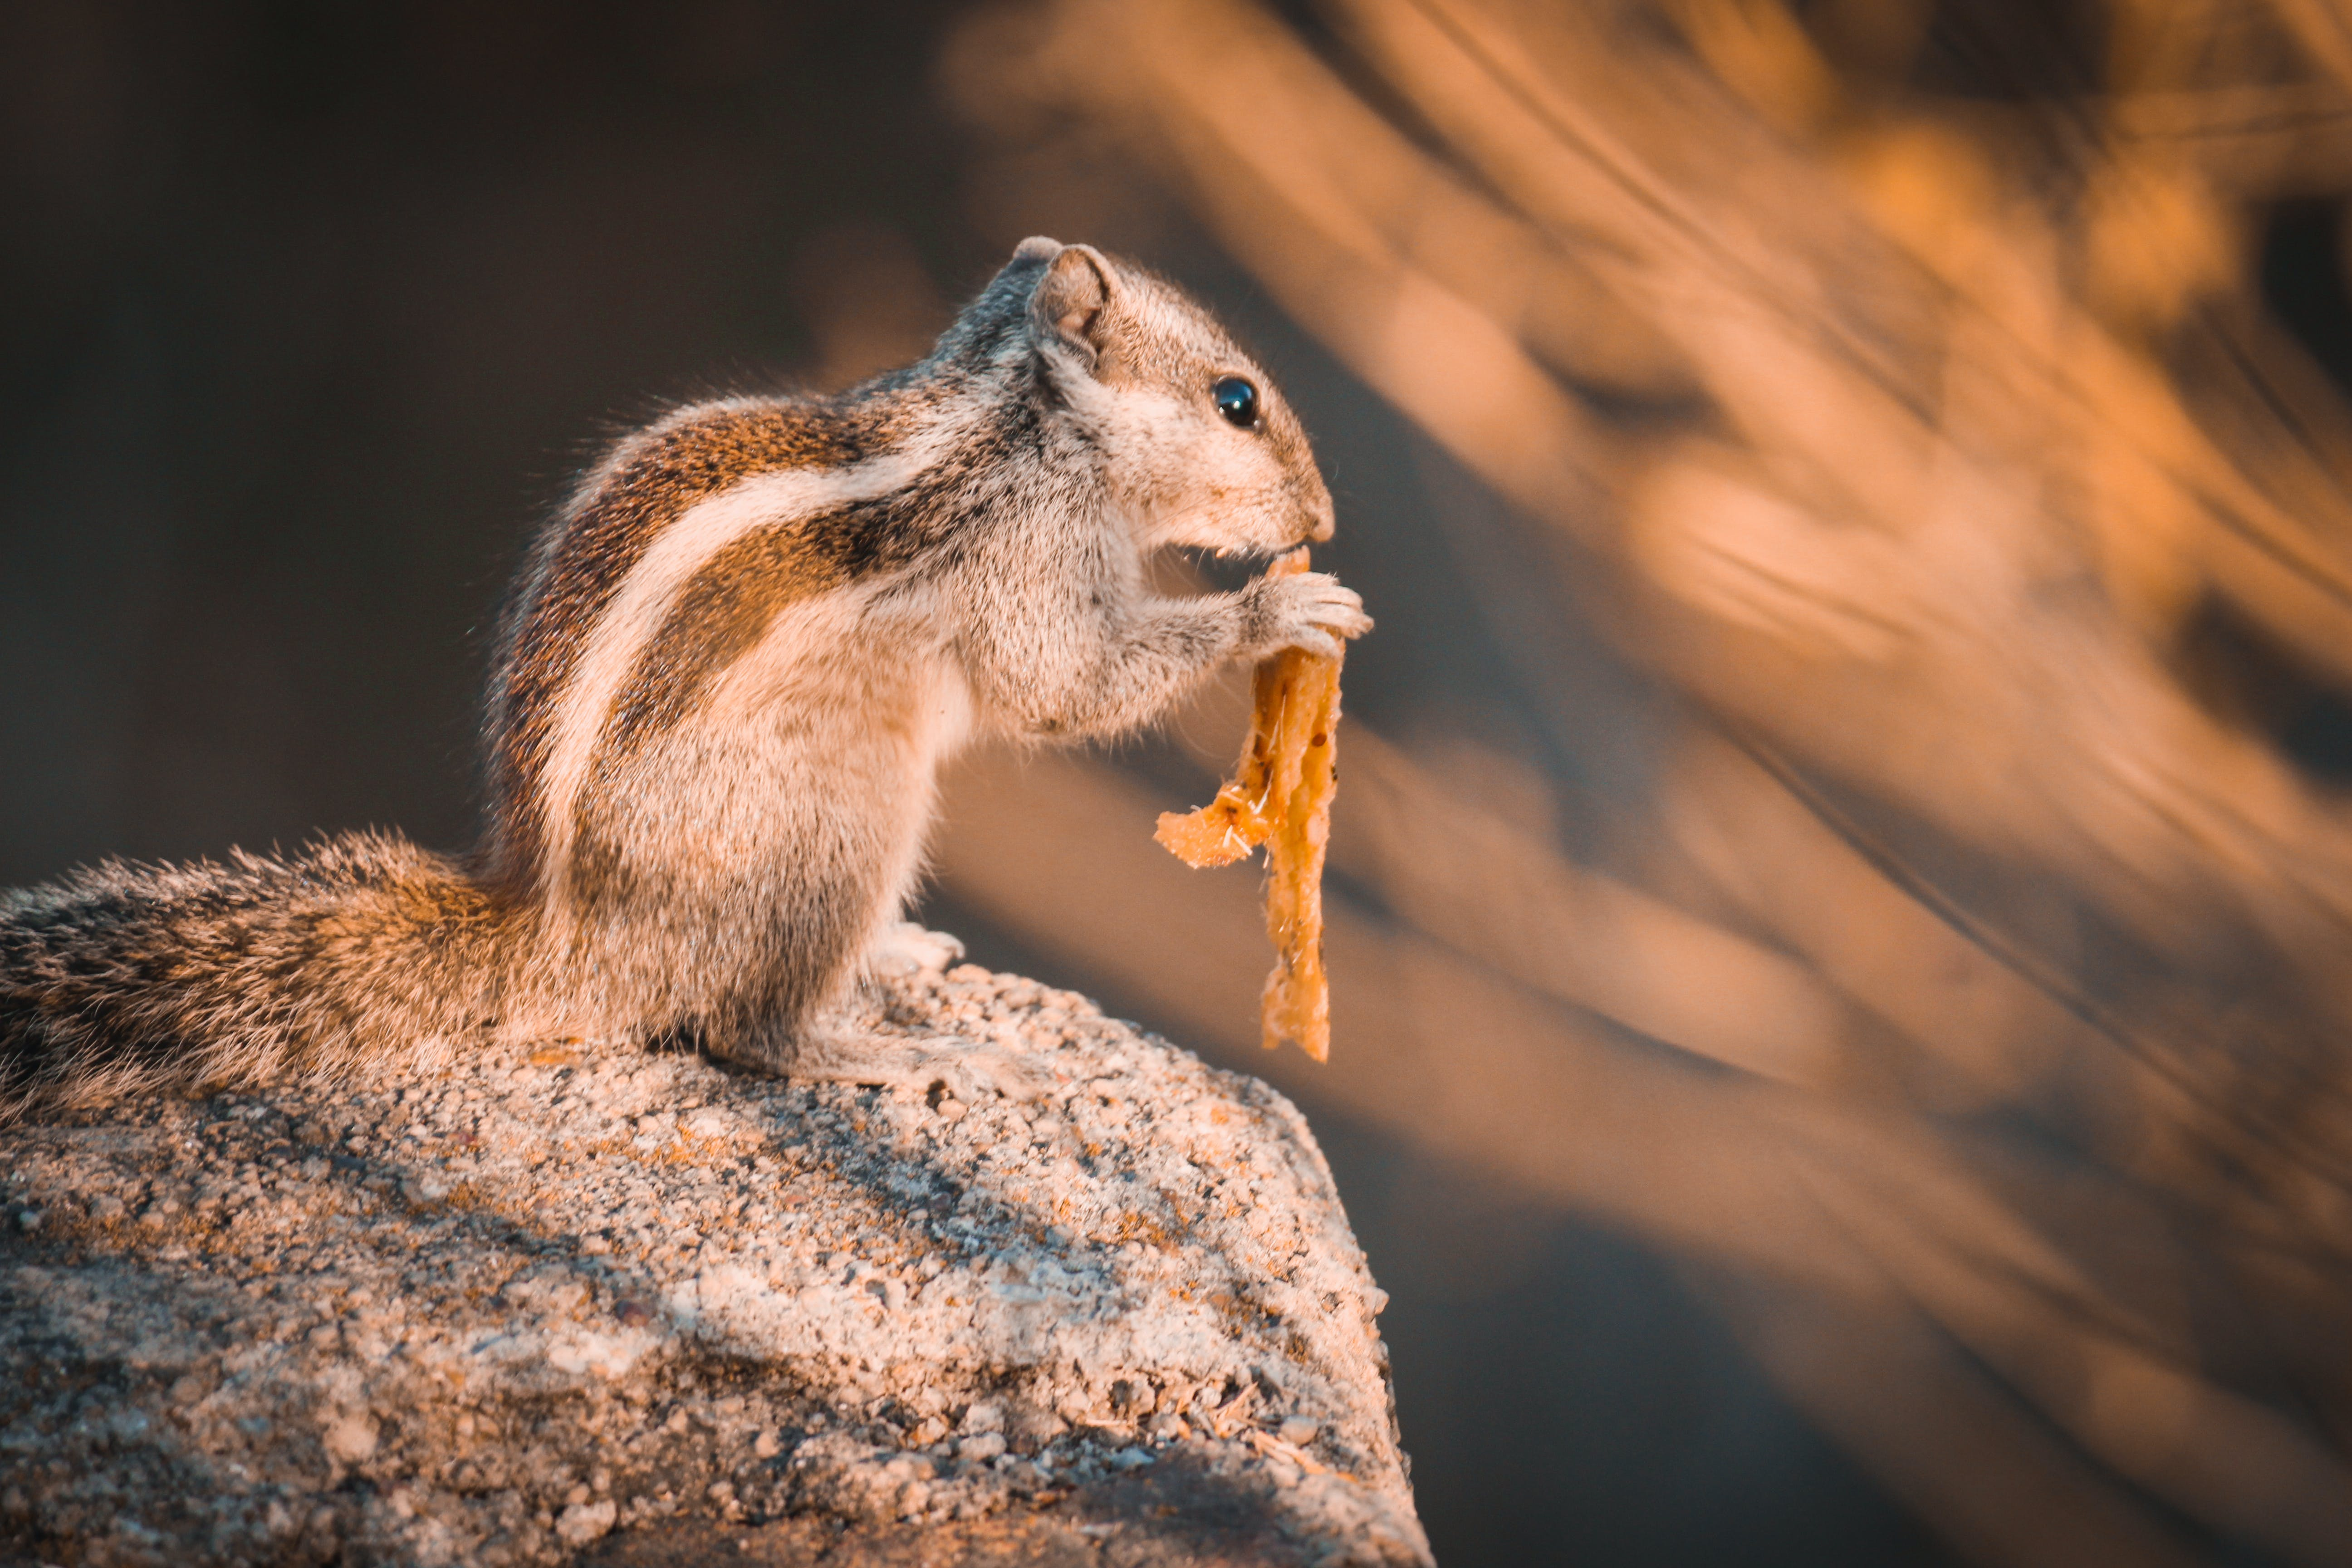 Squirrel on Rock Selective Focus Photography